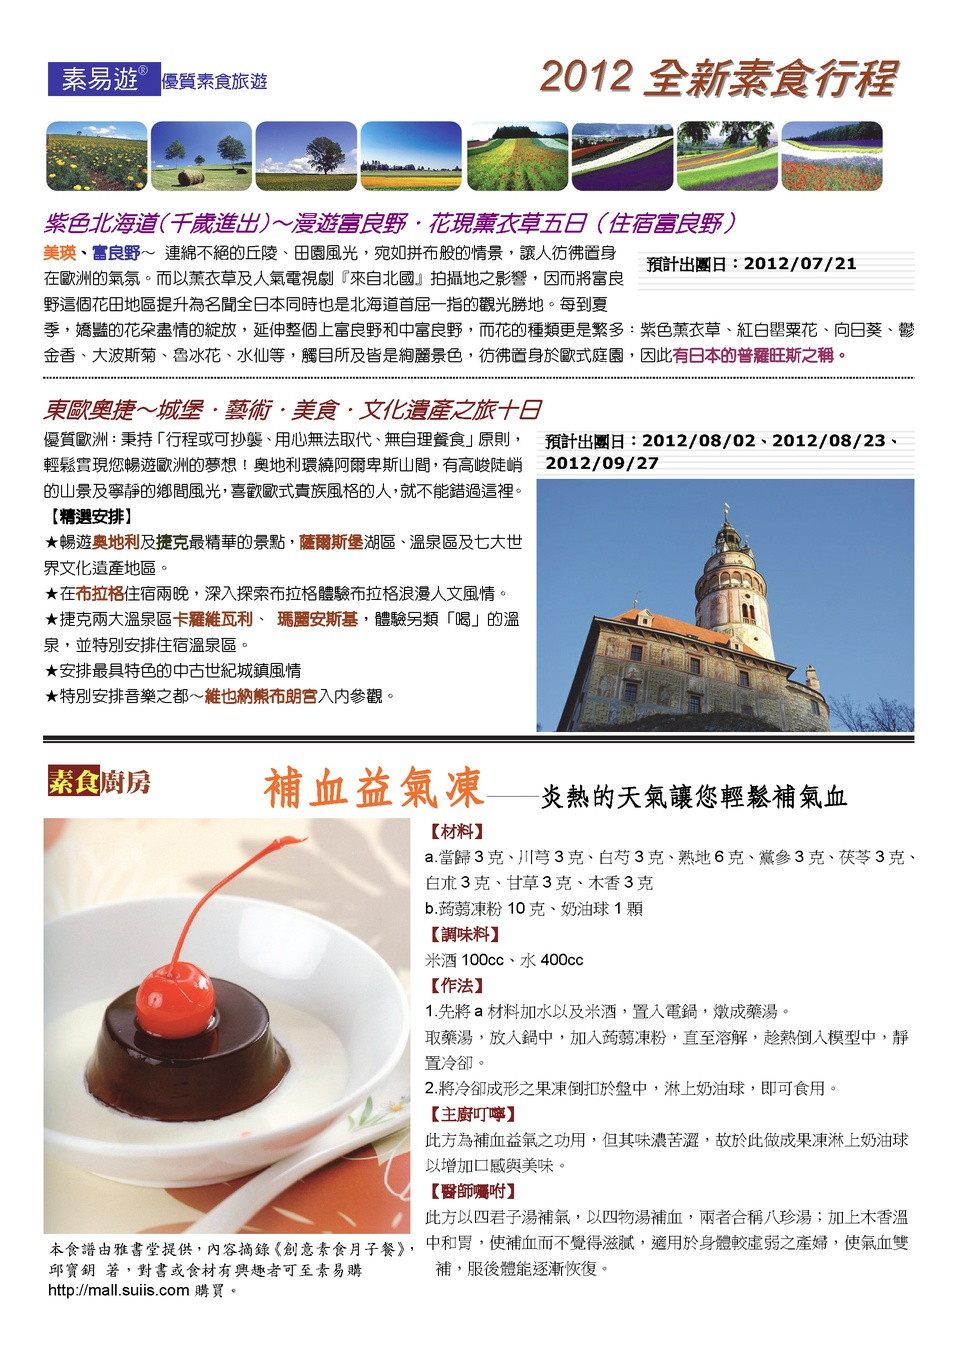 suiis 生活誌-2012-06_Page_2